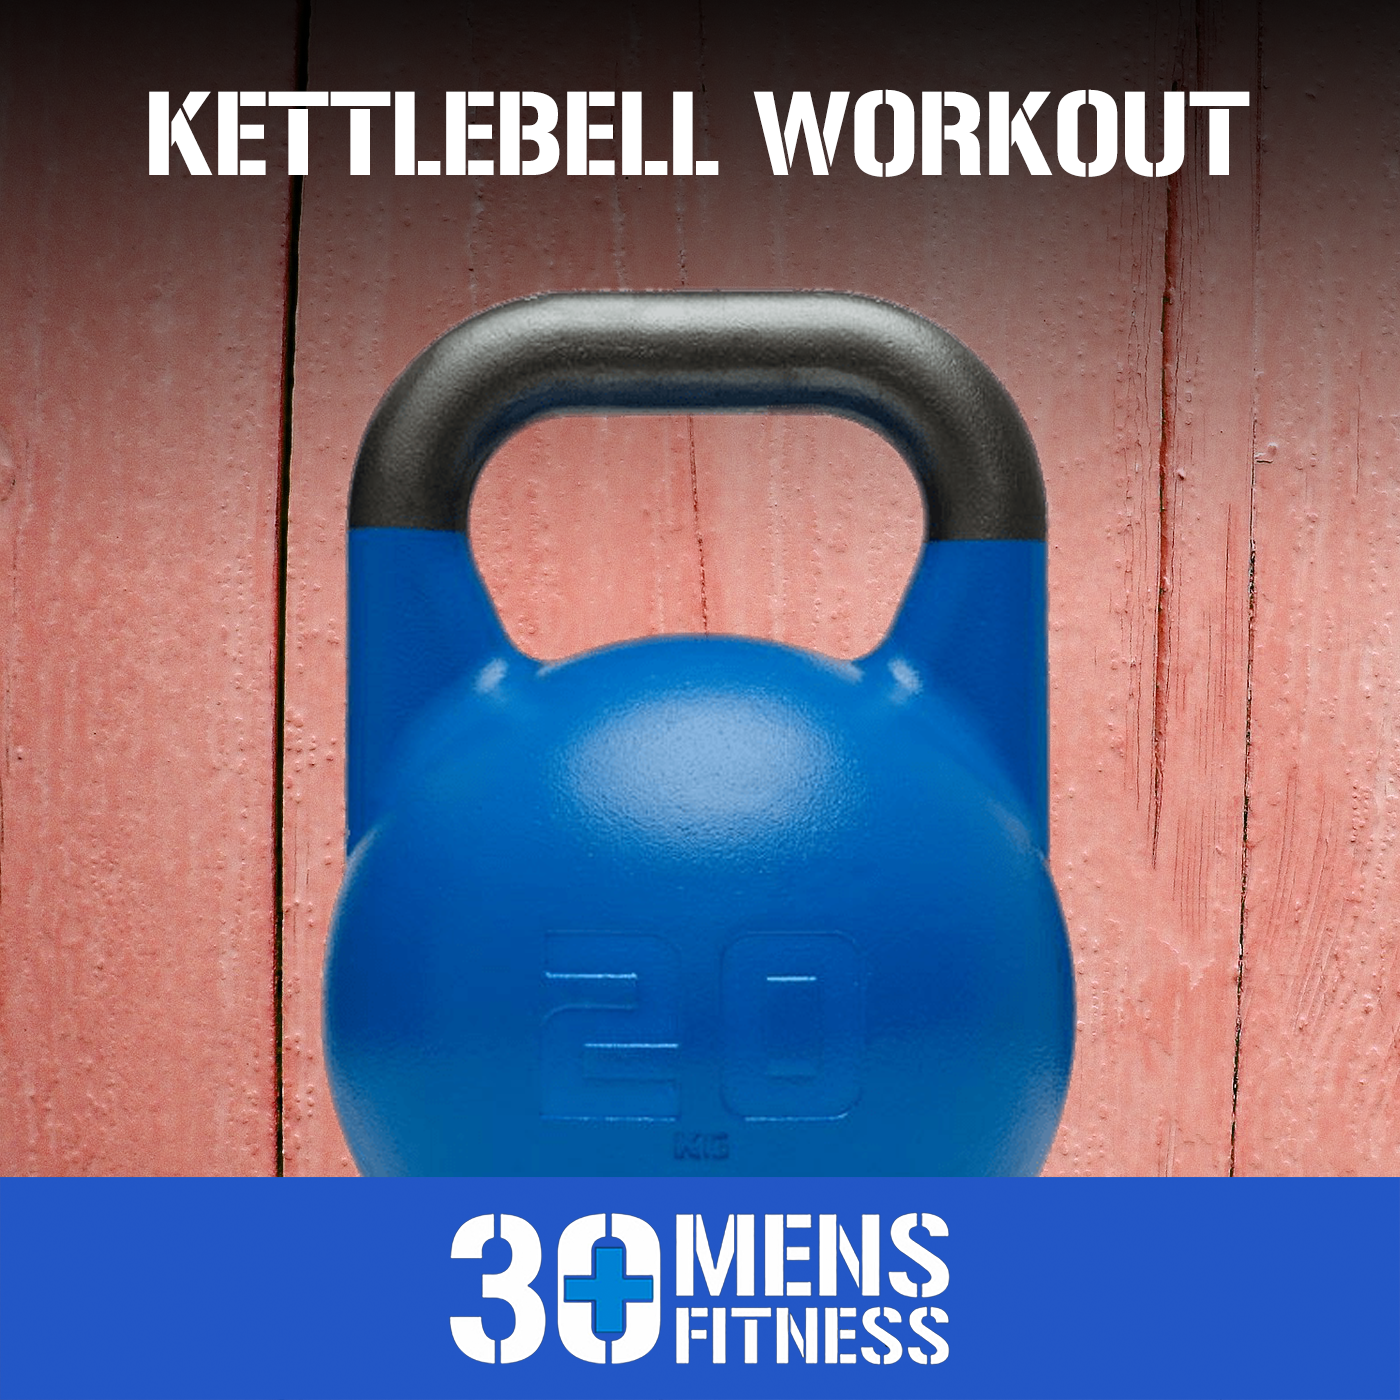 Kettlebell workout to try at home